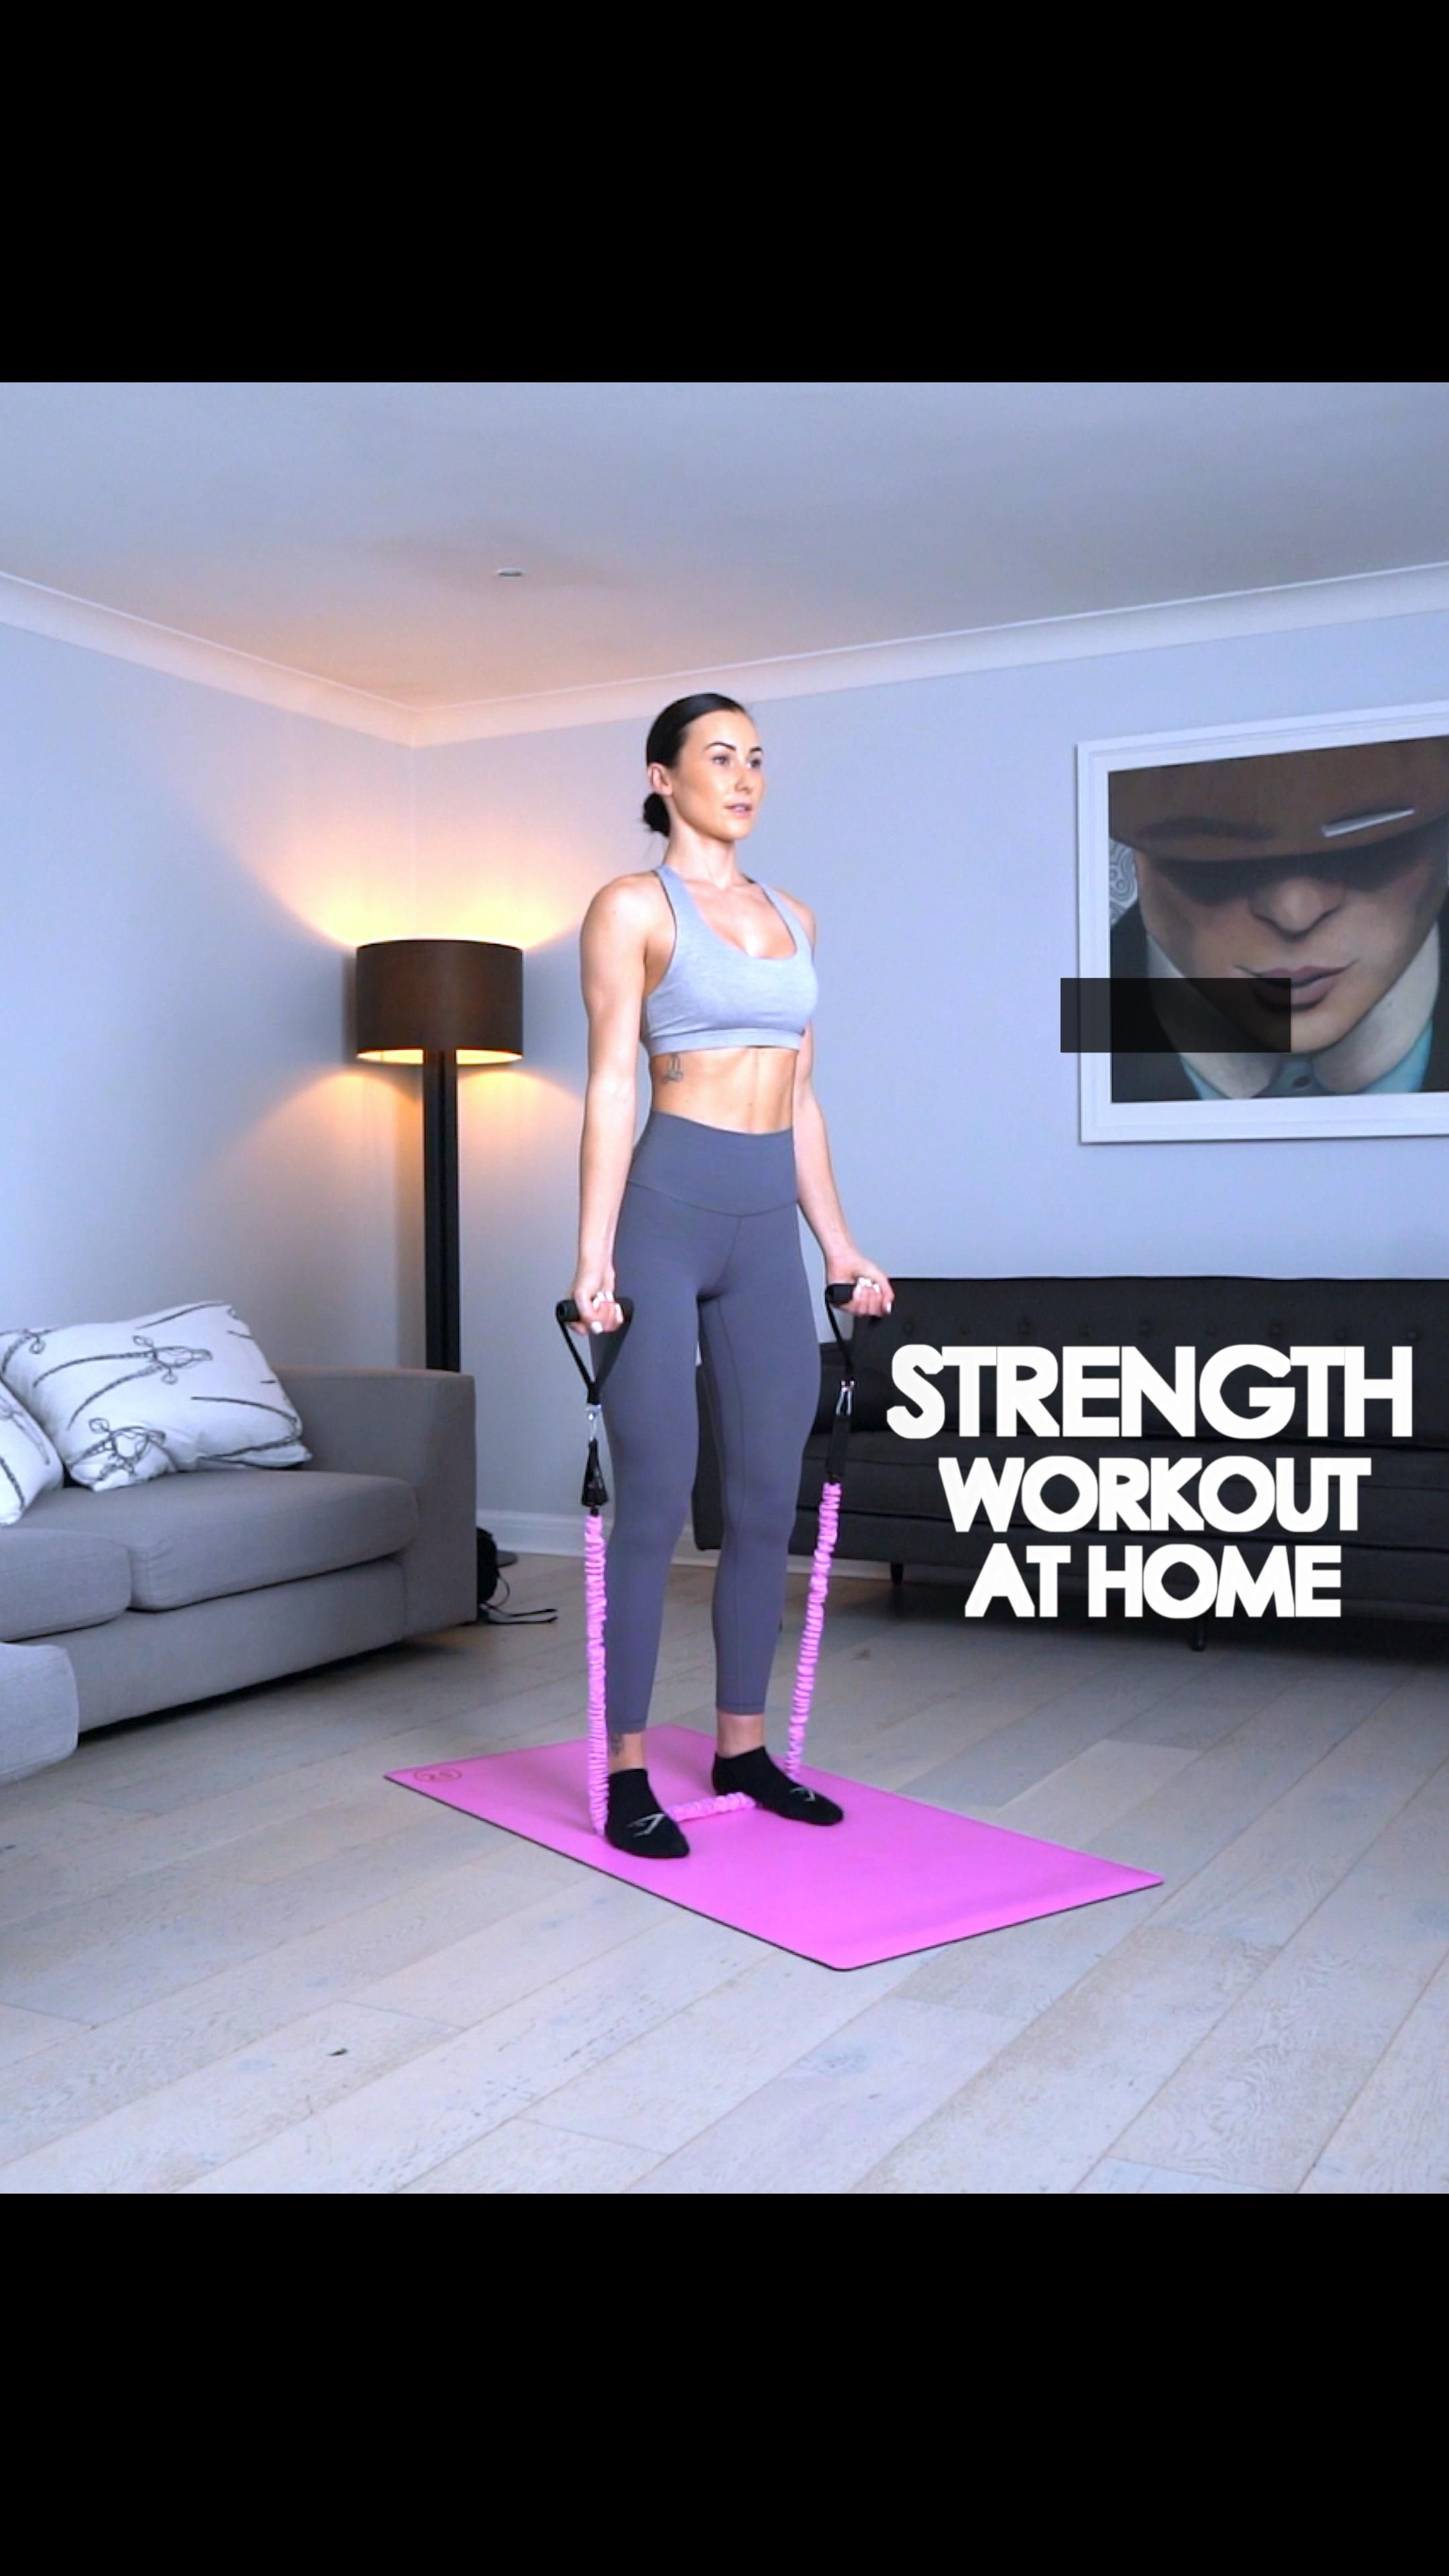 Strength workout at home from the Strong&Sxy fitness app